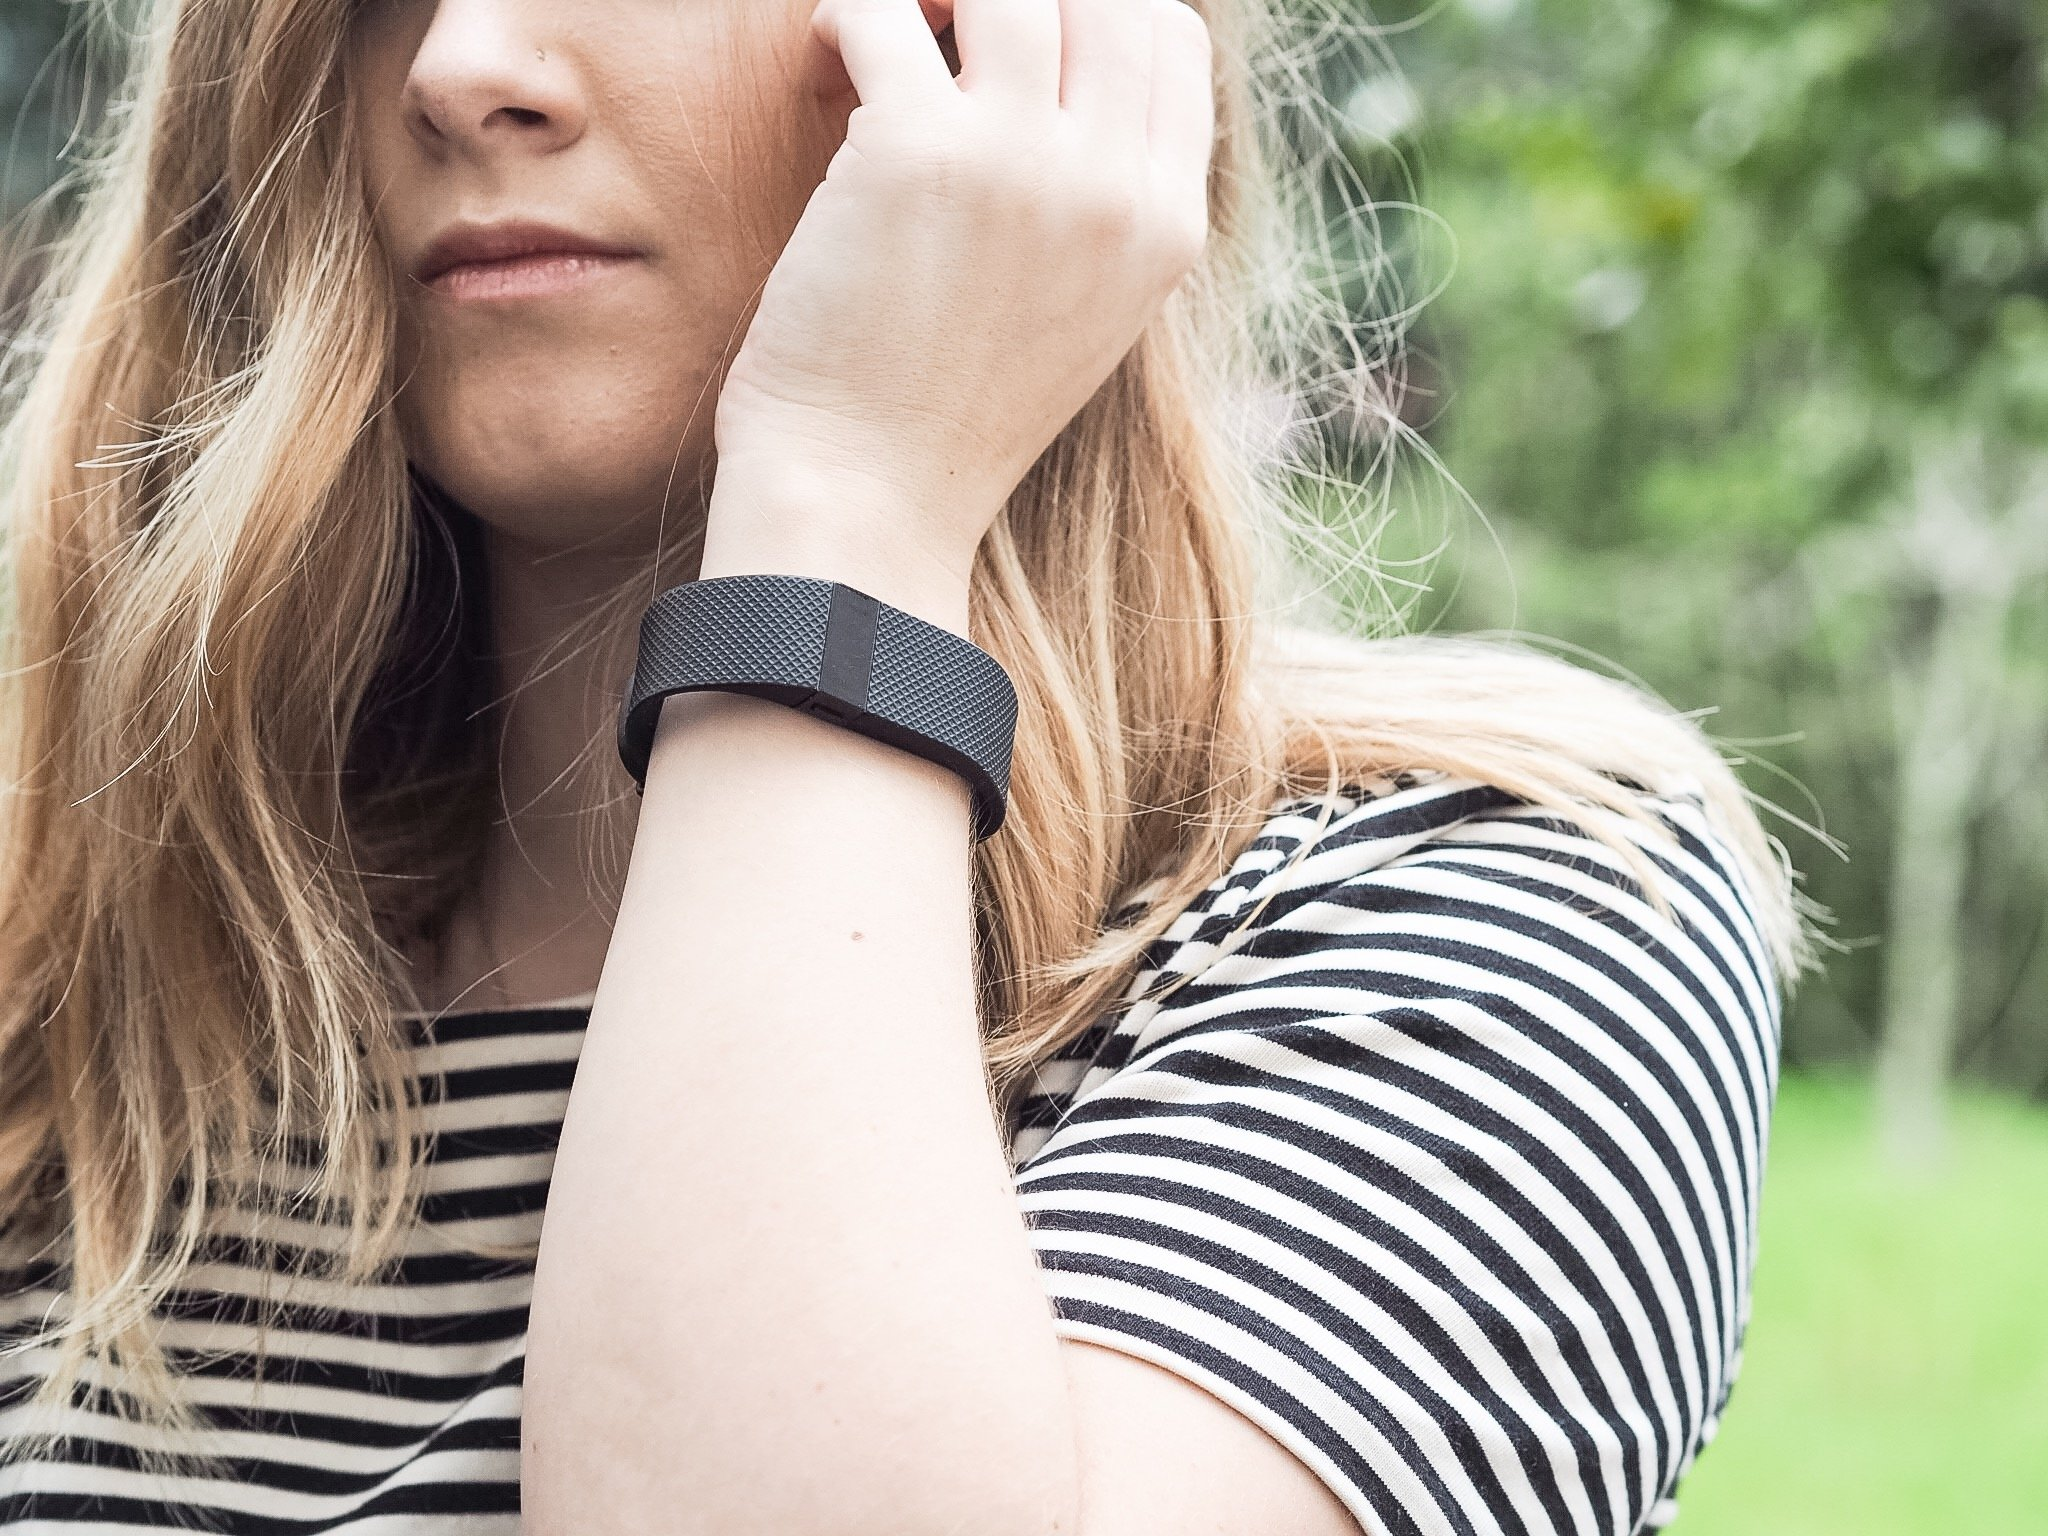 fitbit-review-3